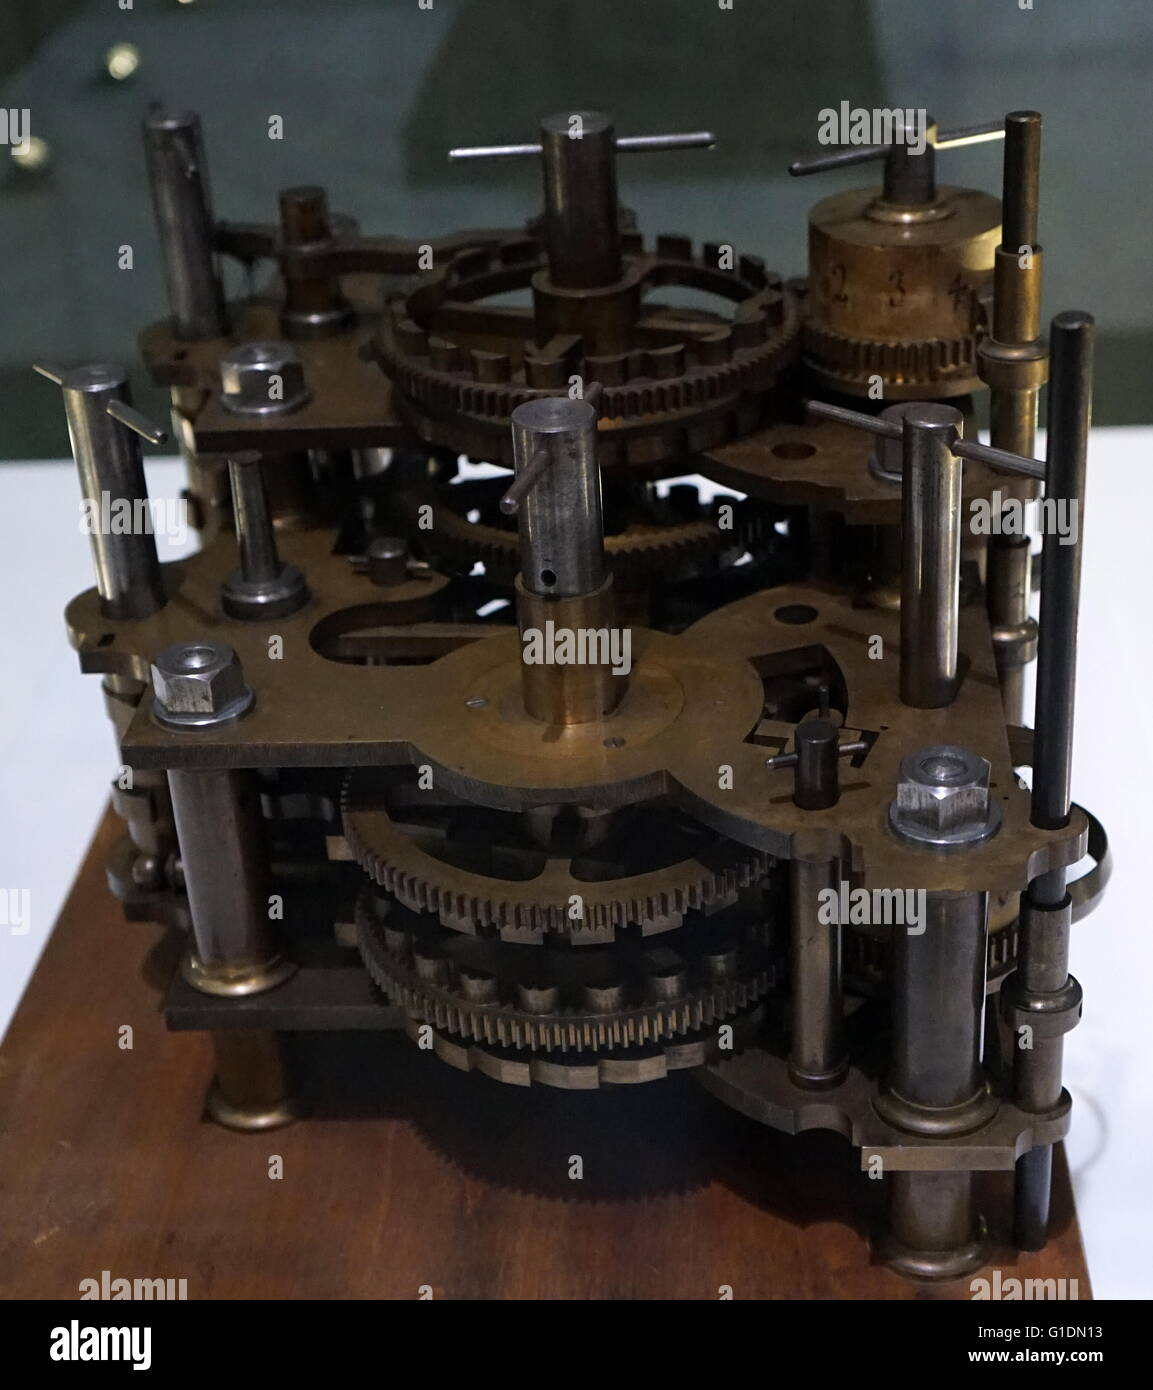 The Babbage Engine by Charles Babbage (1791-1871) computer pioneer and designer. Dated 19th Century - Stock Image